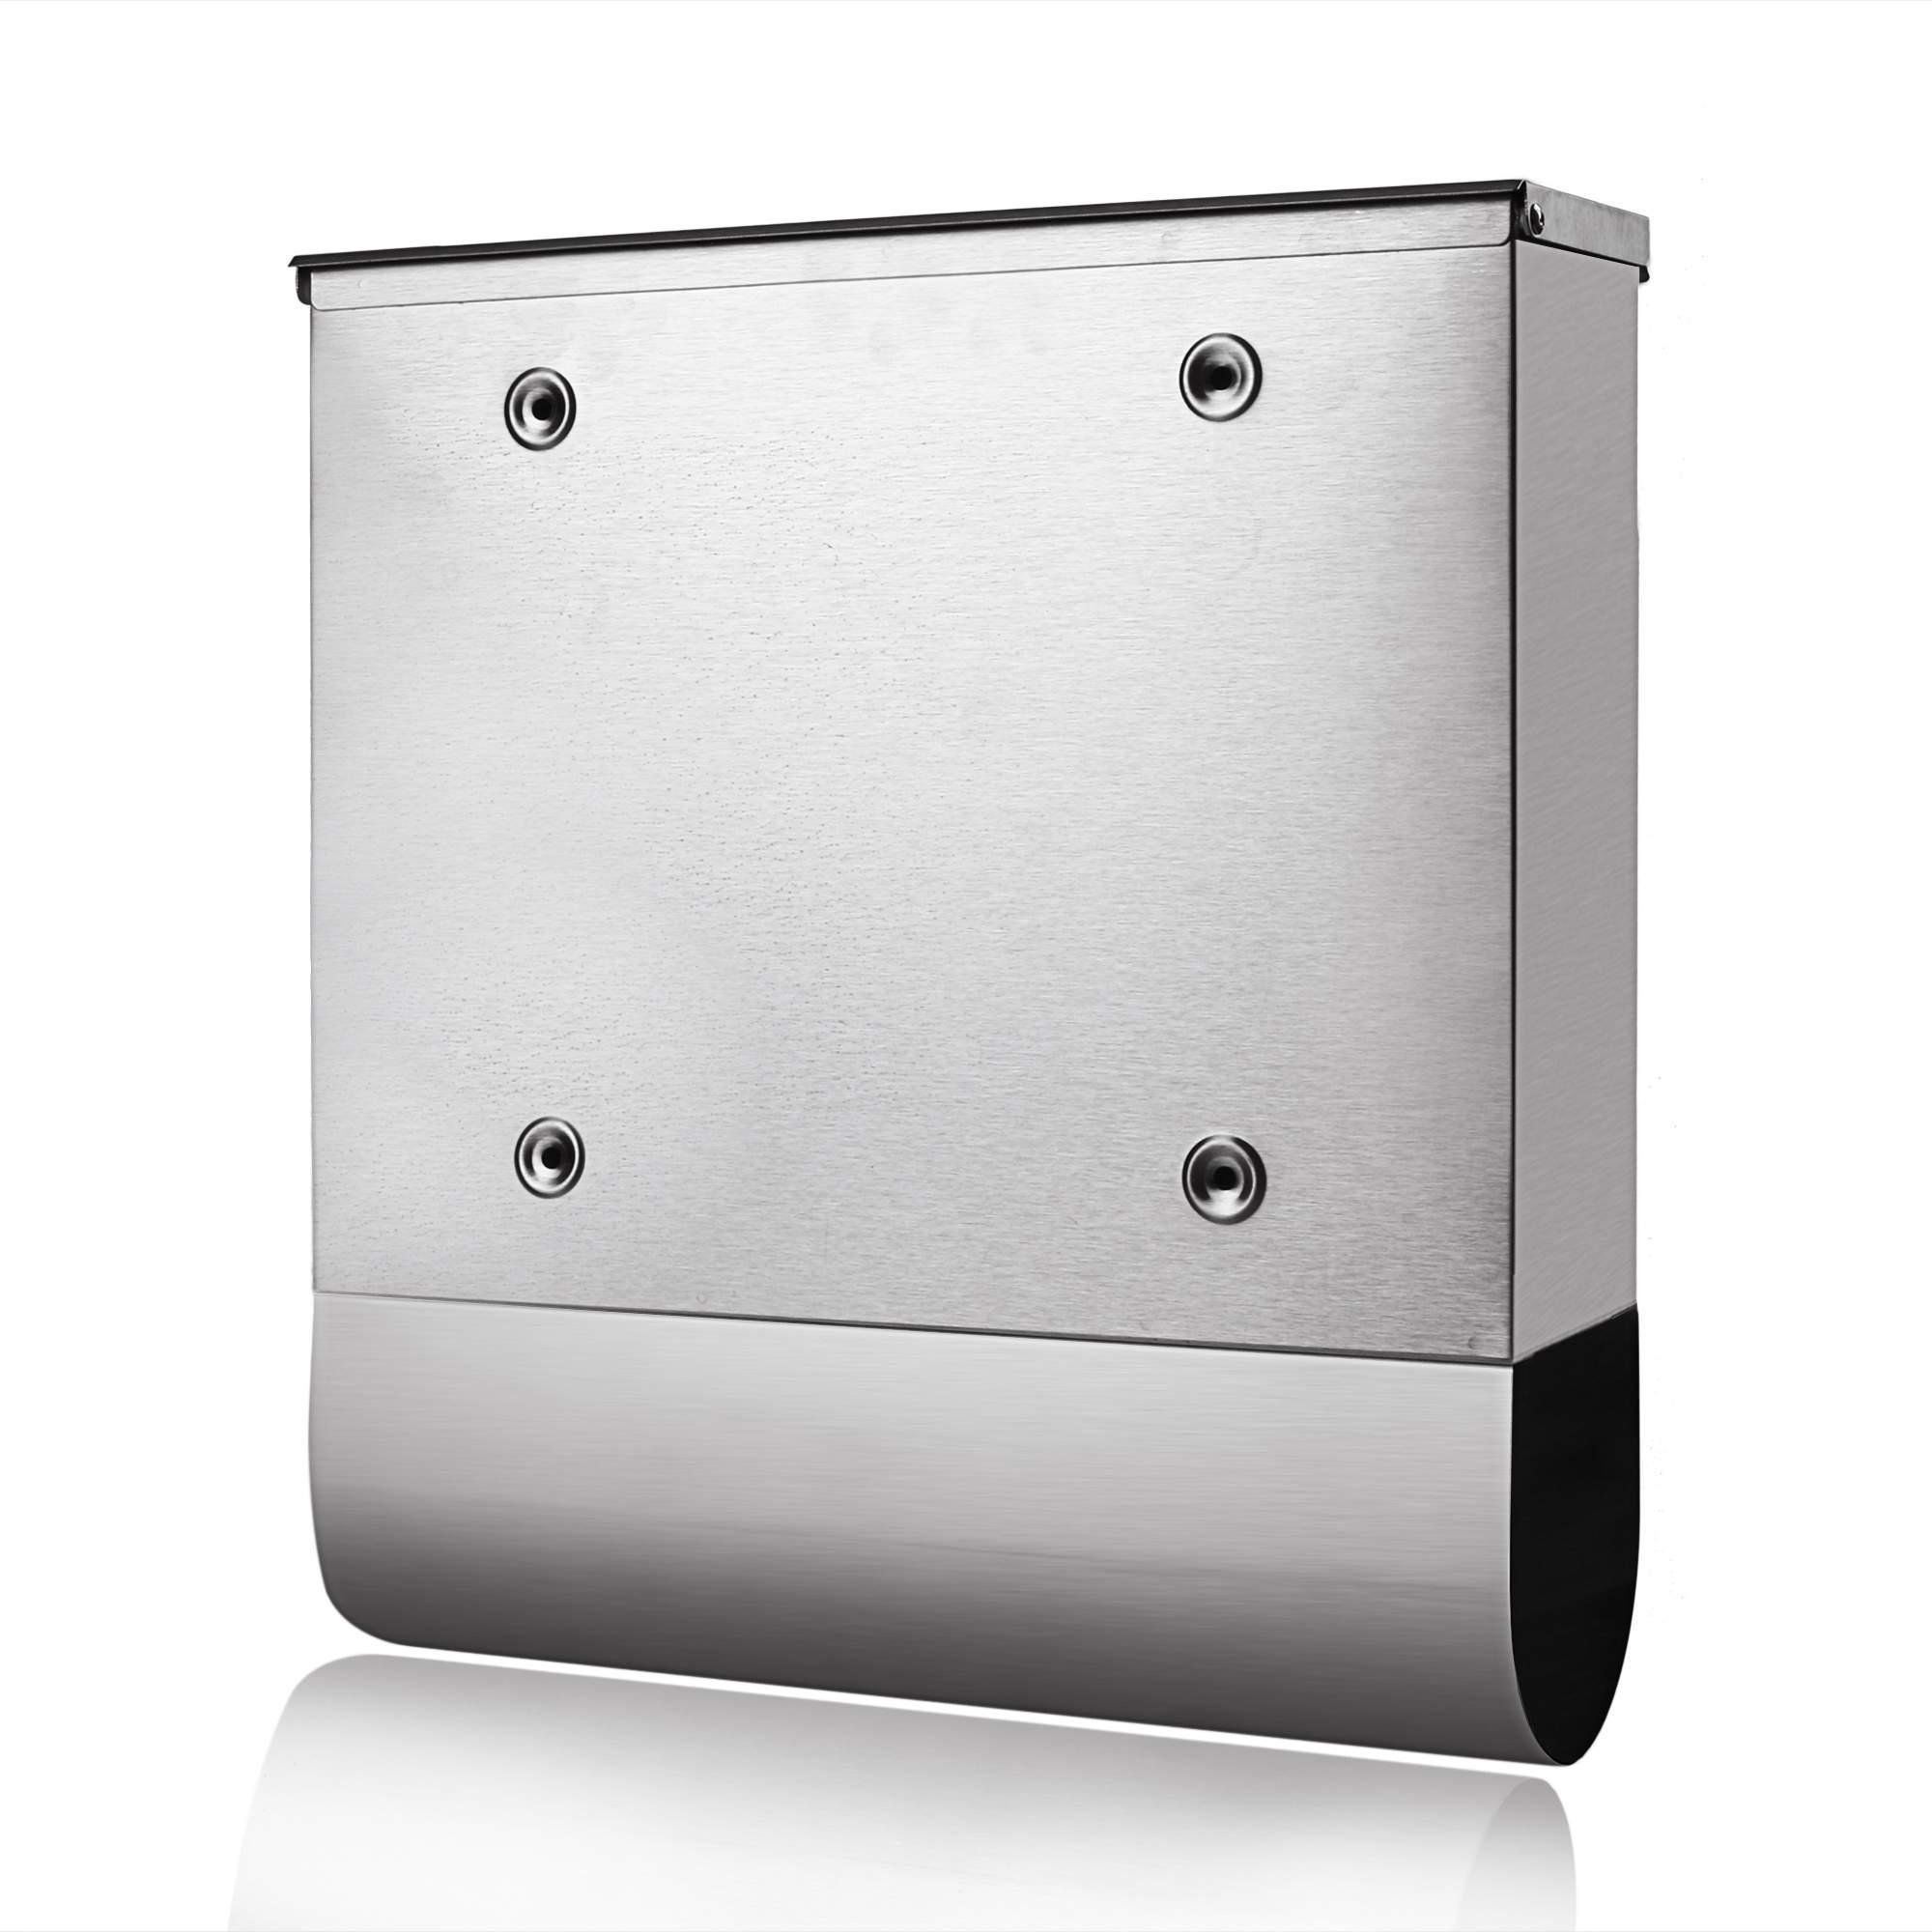 Stainless Steel Locking Mailbox Wall Mounted Letterbox [US Stock] by Rateim (Image #5)